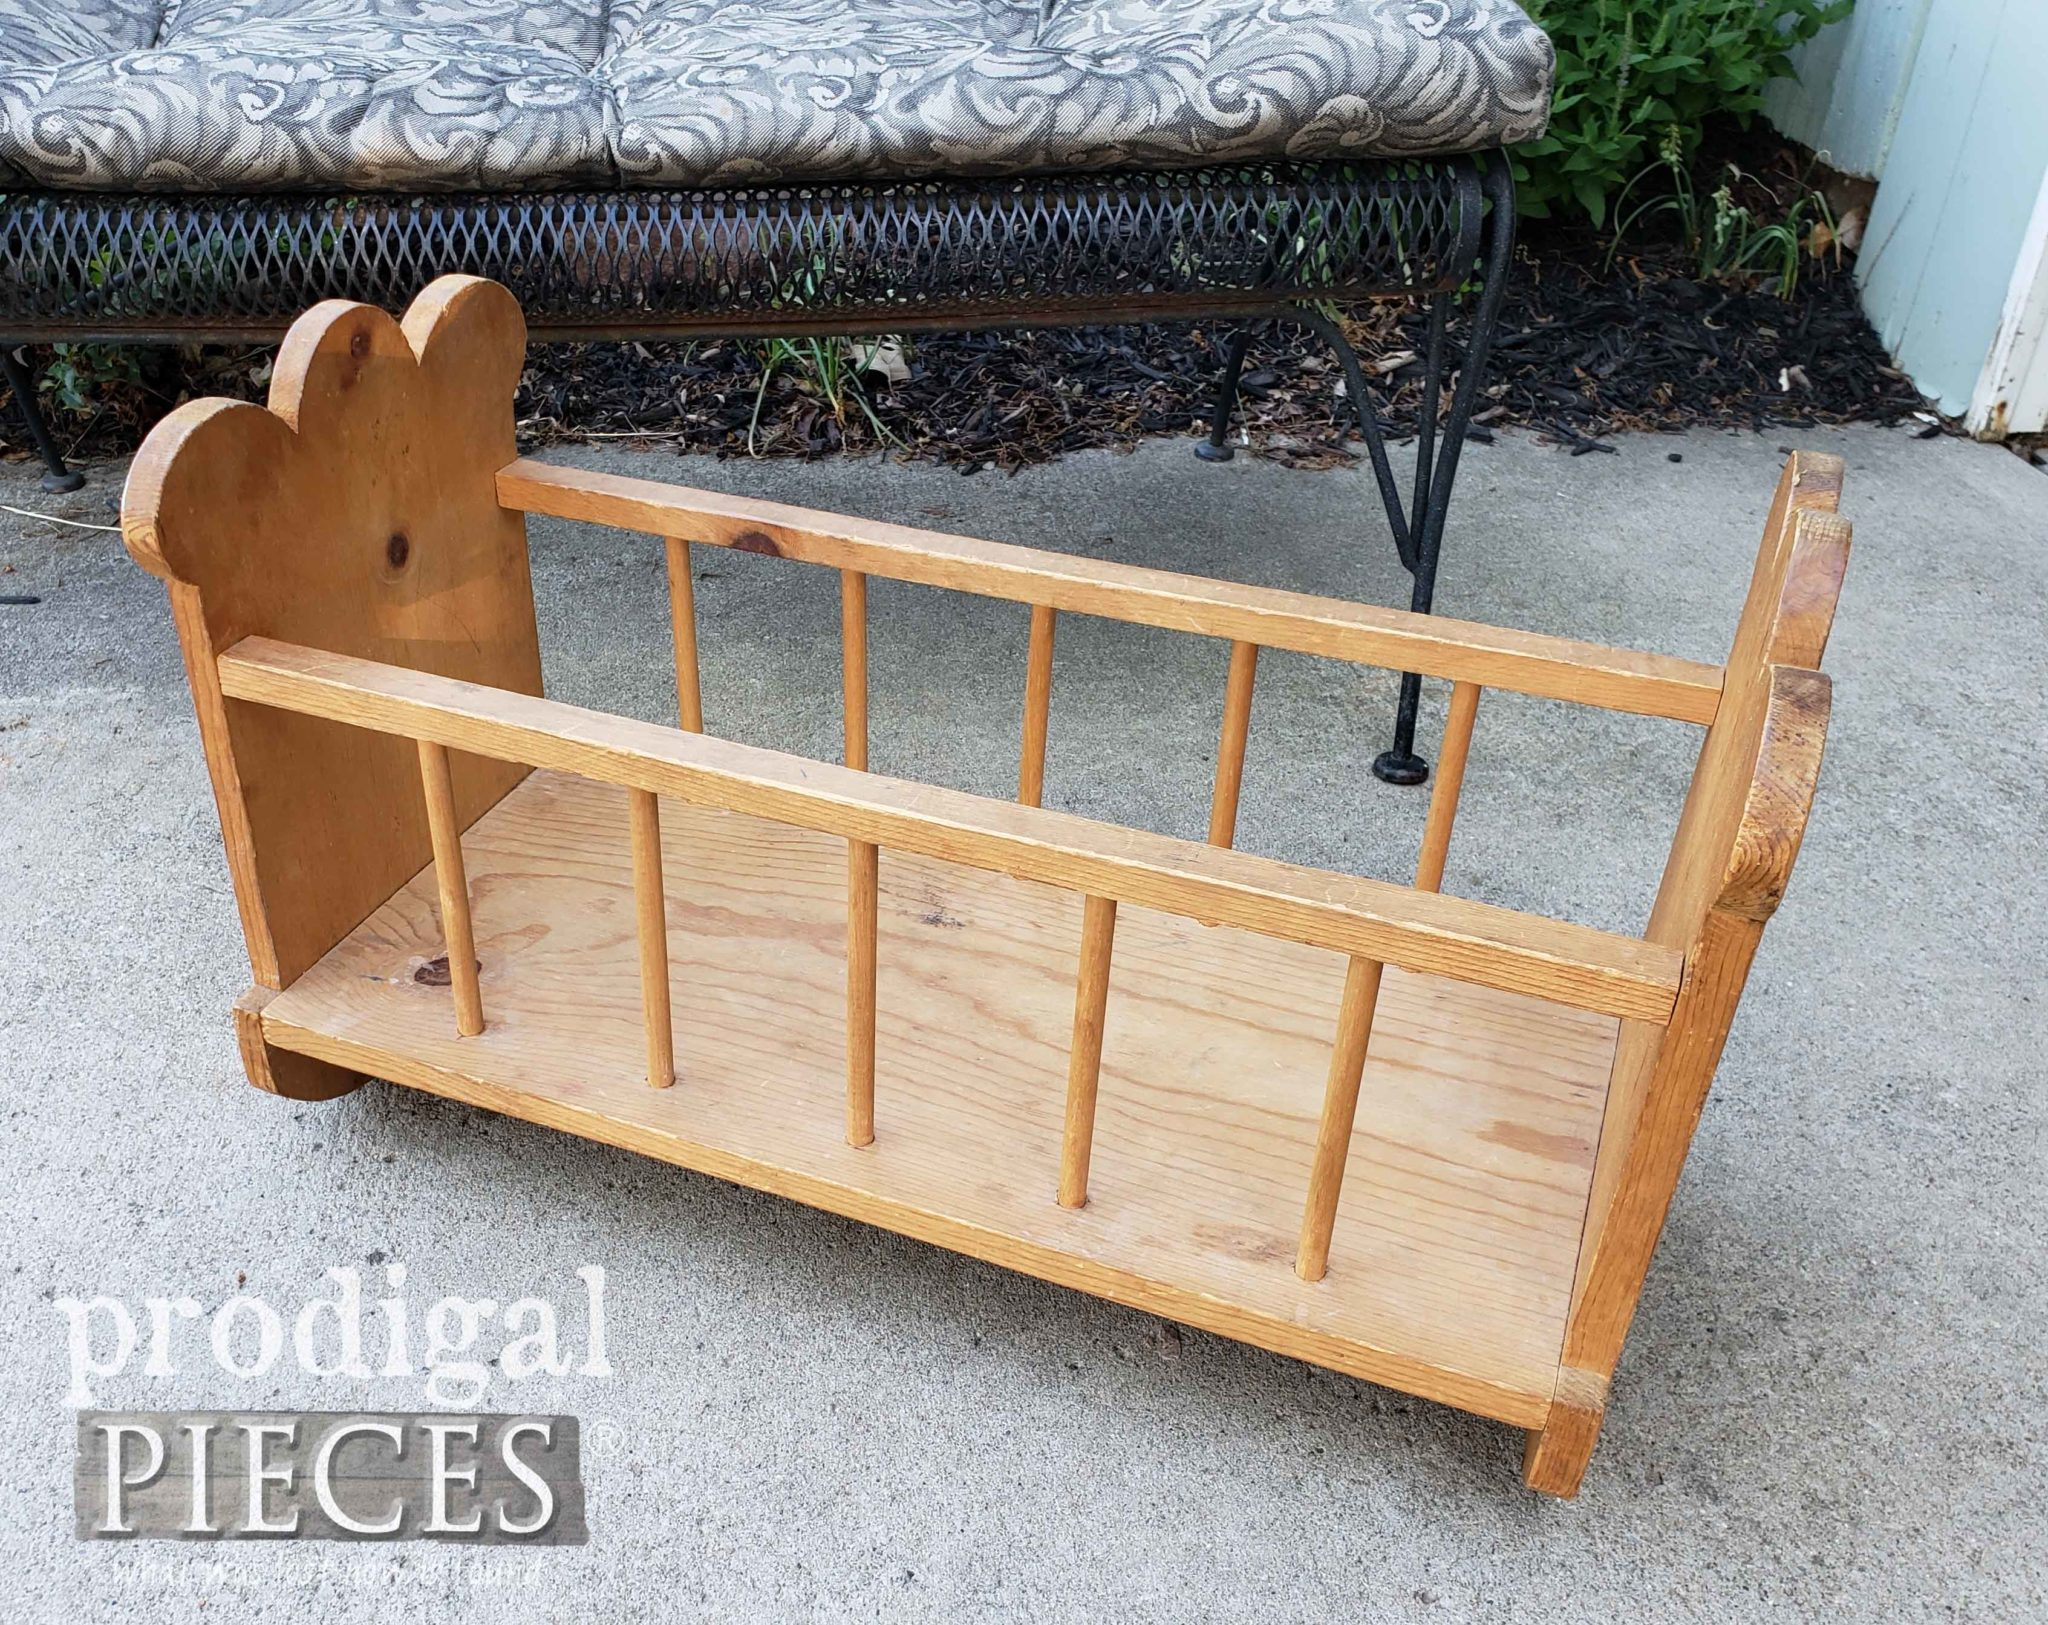 Thrifted Wooden Cradle Before Makeover by Prodigal Pieces | prodigalpieces.com